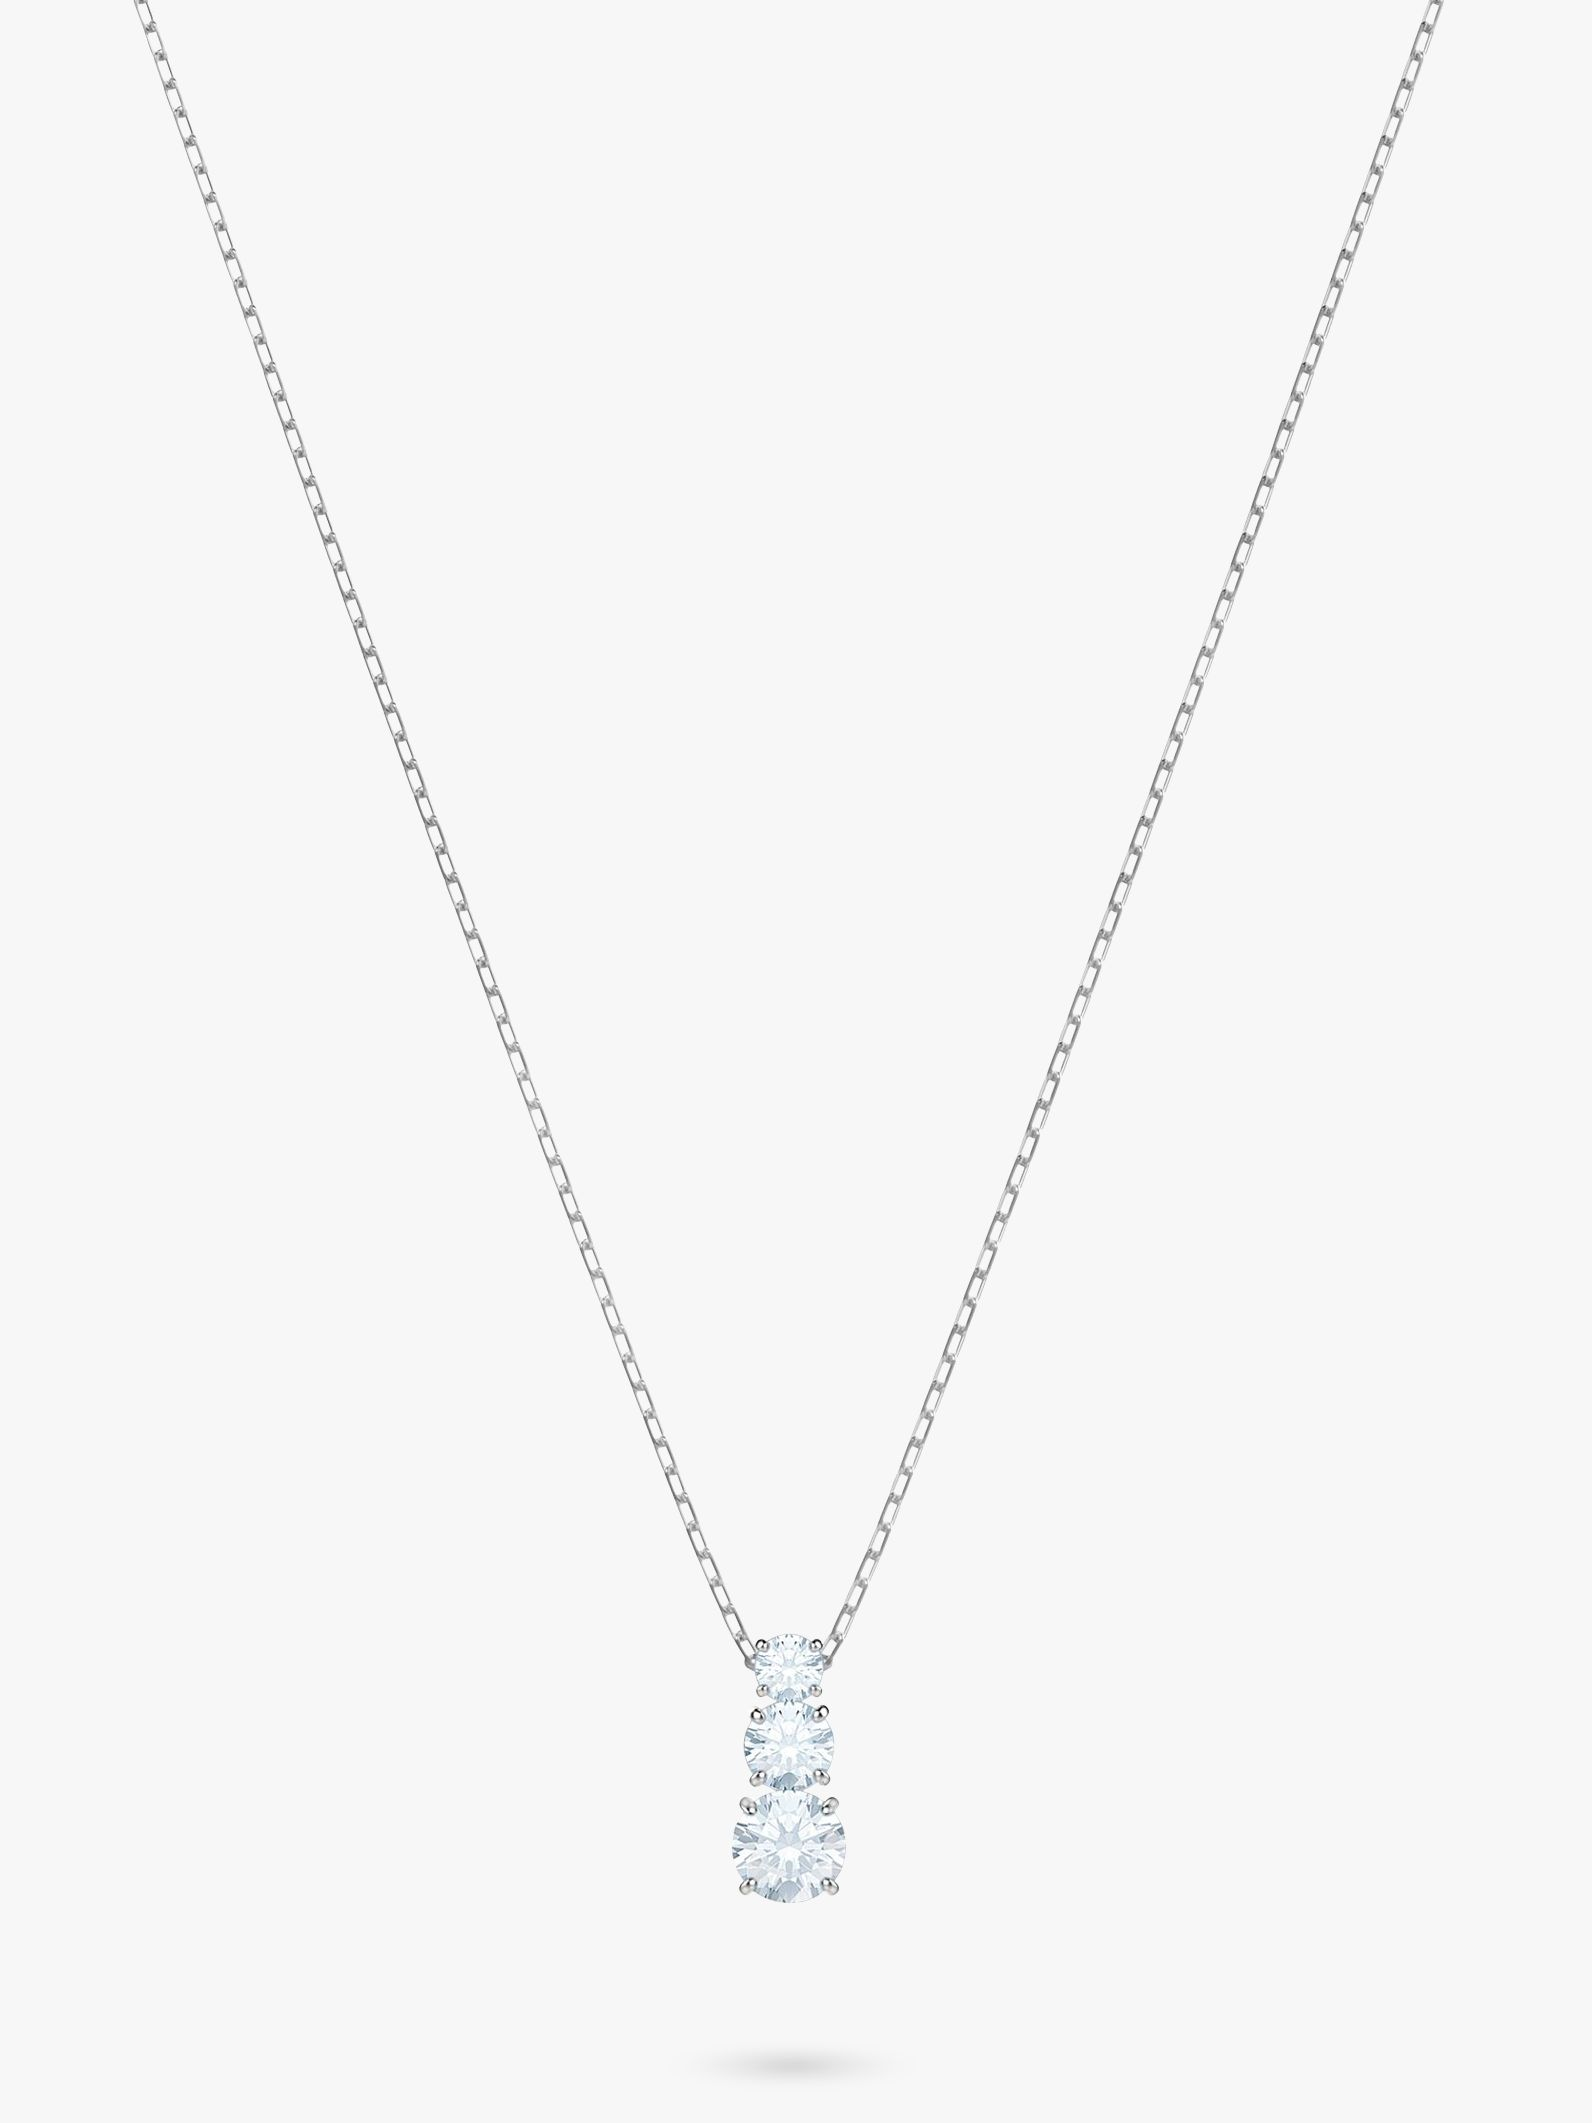 Swarovski Swarovski Attract Triple Crystal Pendant Necklace, Silver/Clear